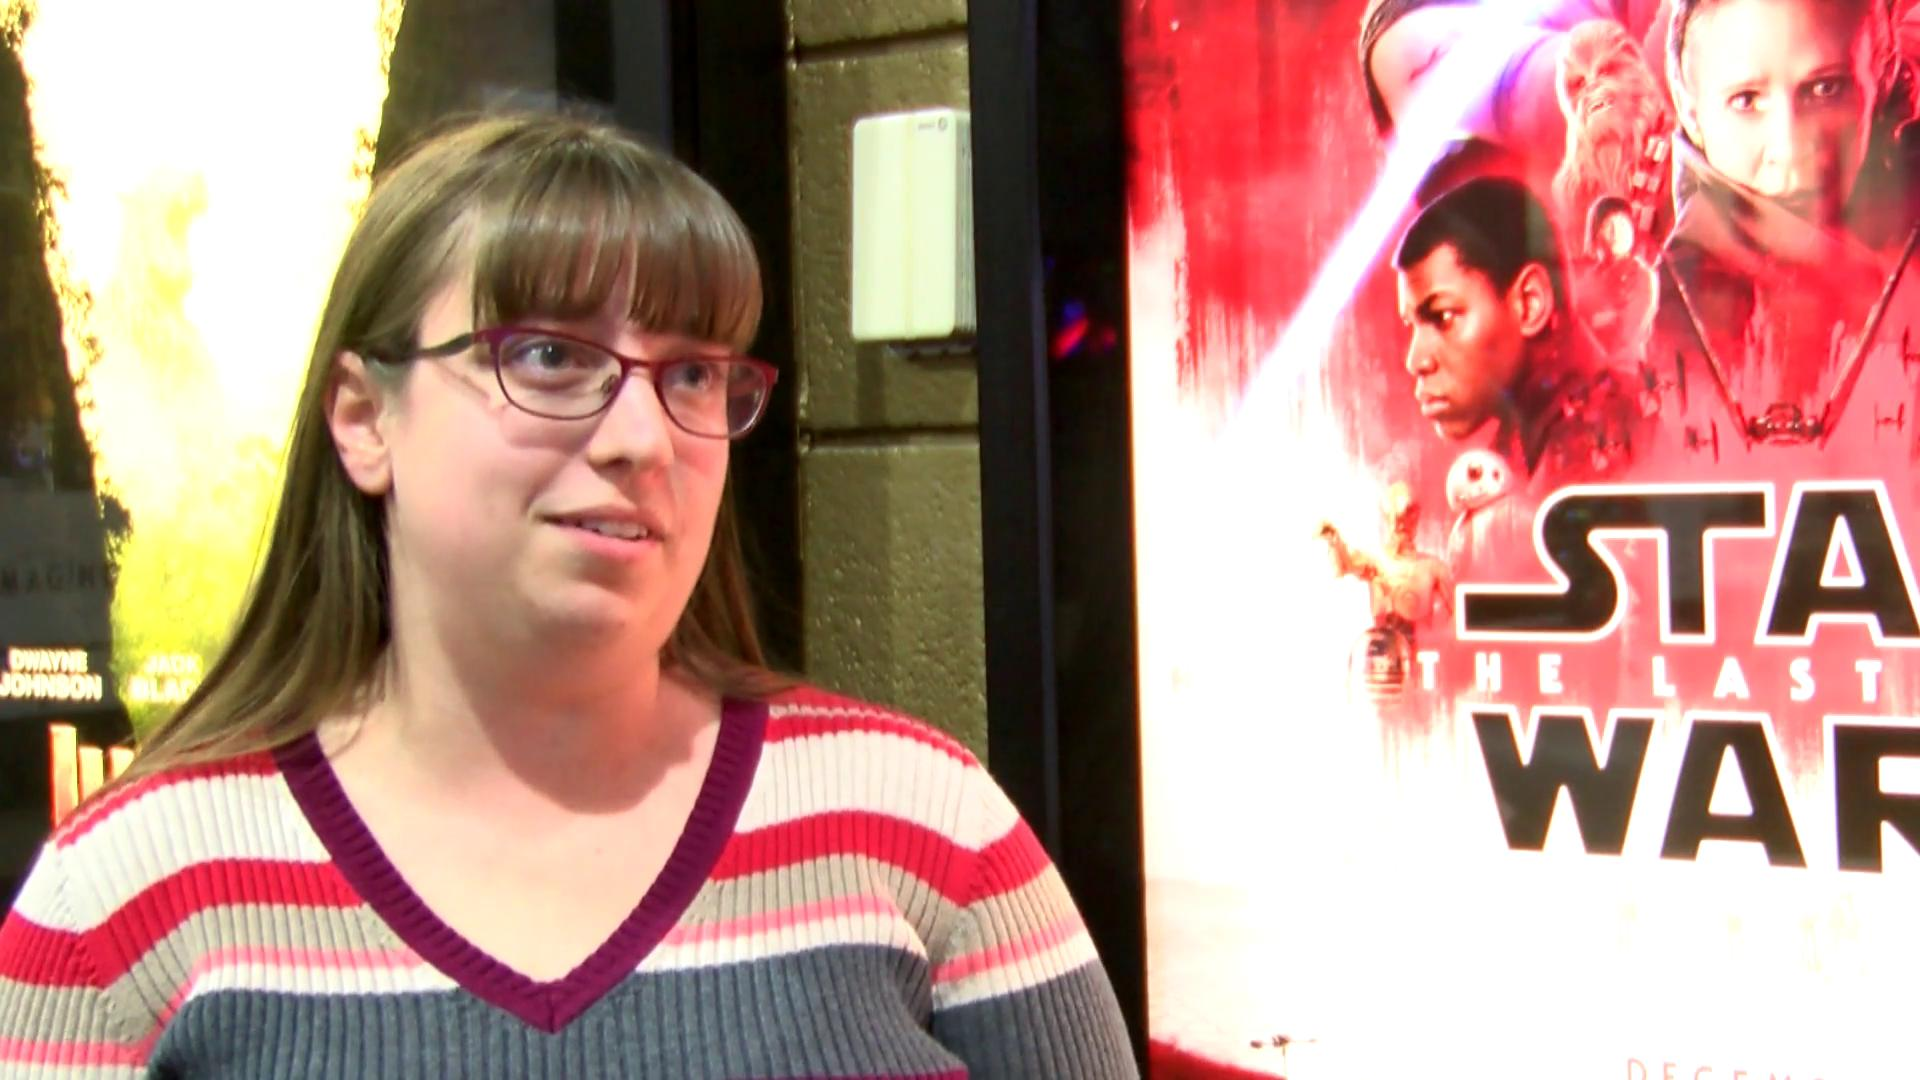 <p>Star Wars fans had 'The Force' with them when they came out in force to see the latest installment of the intergalactic franchise. (Photos by Ian Wood WEYI/WSMH)</p>